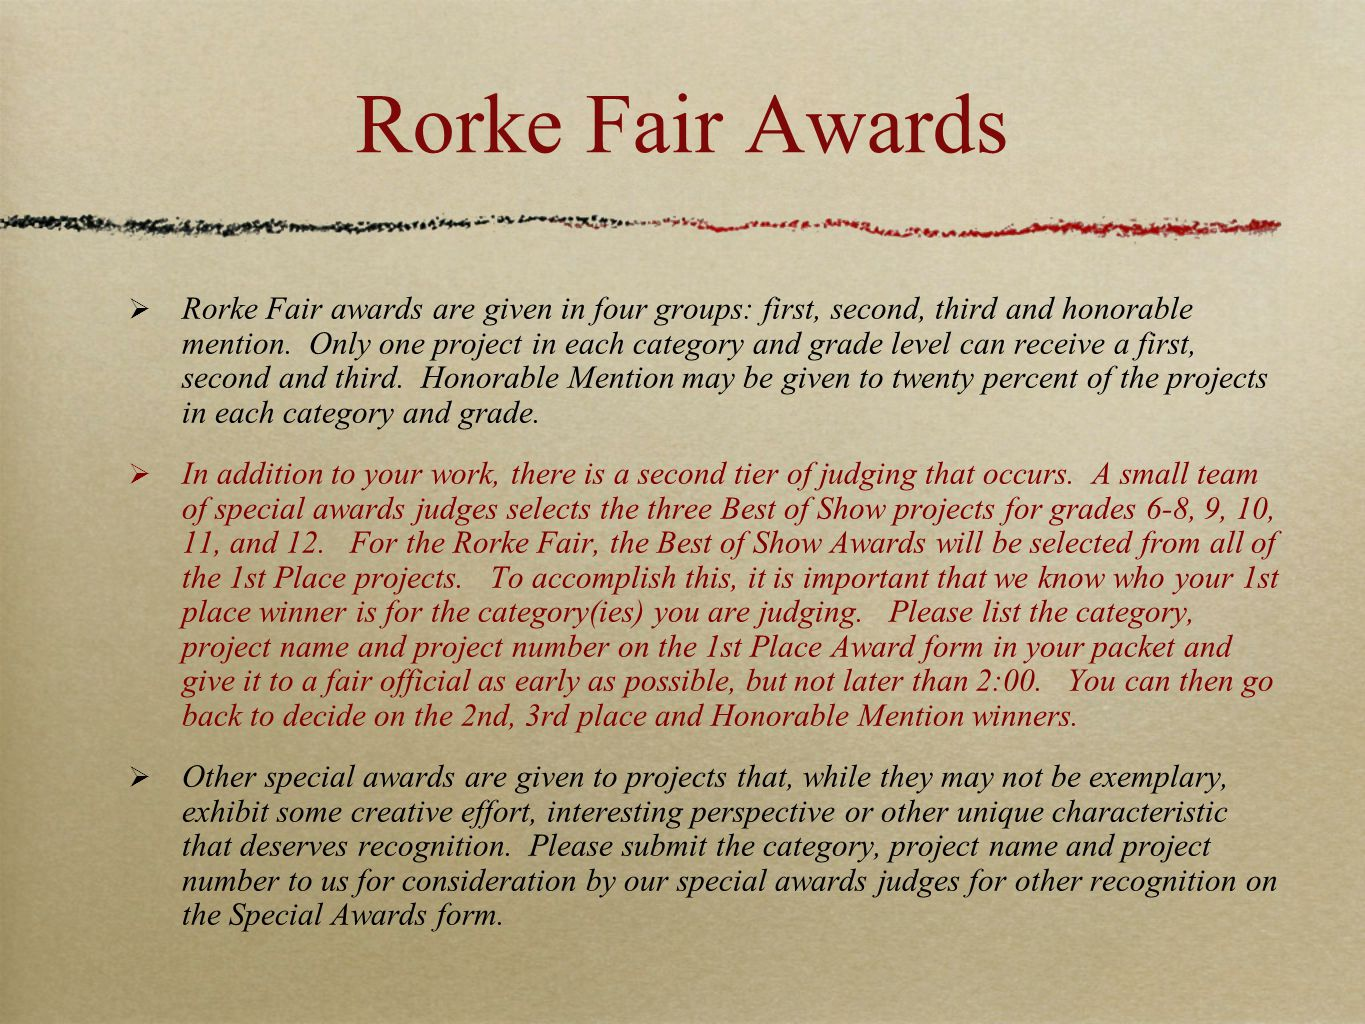 Rorke Fair Awards  Rorke Fair awards are given in four groups: first, second, third and honorable mention. Only one project in each category and grad